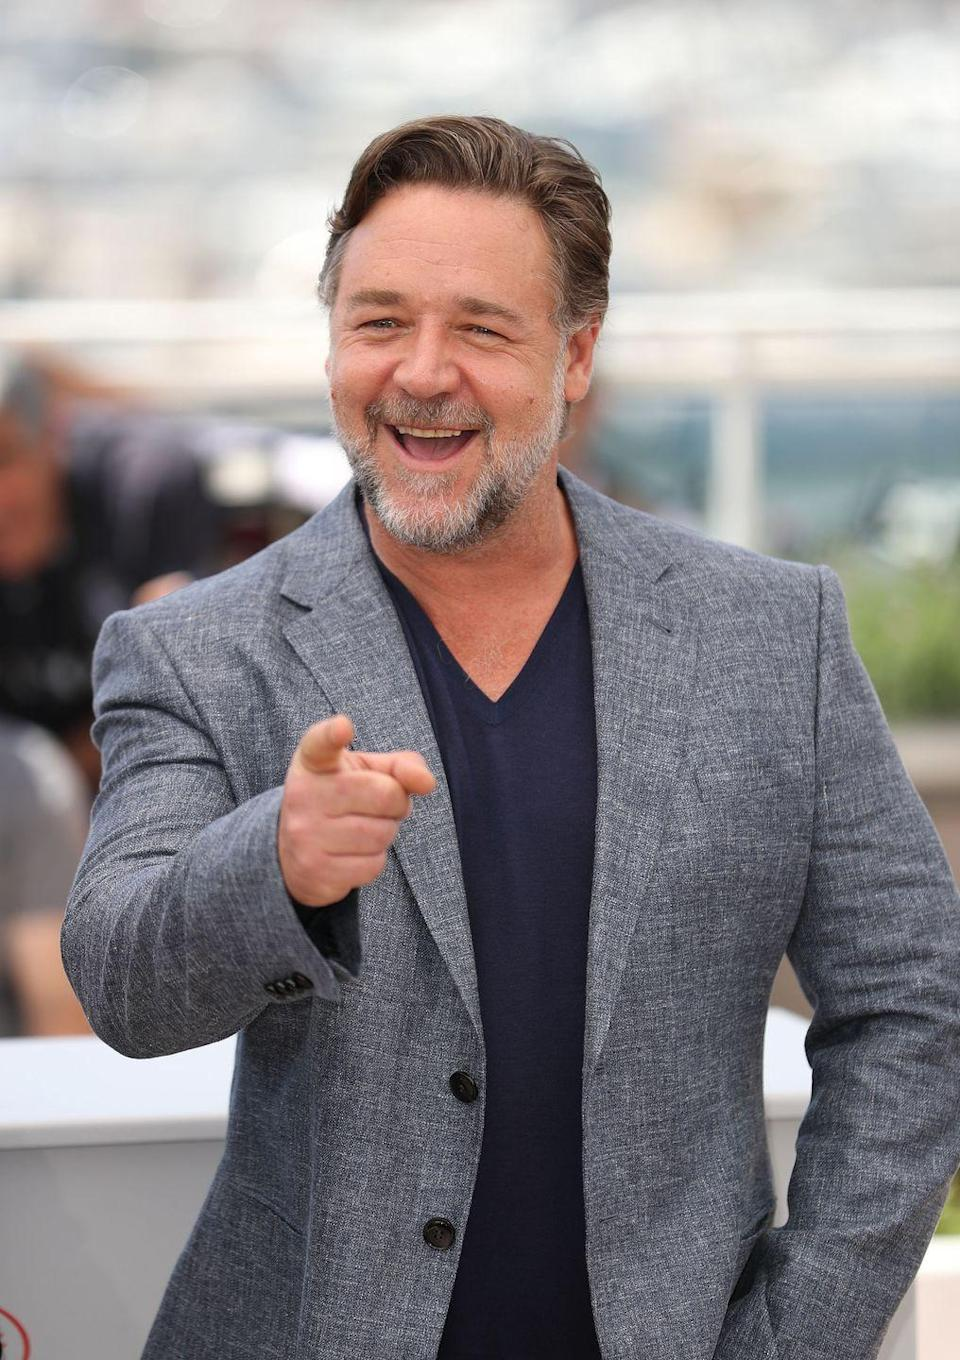 """<p>Russell Crowe's history with music<a href=""""https://torontosun.com/2017/07/17/russell-crowe-blasts-his-music-critics/wcm/5c4c977d-4d2b-442e-88d2-afc19bc41d4a"""" rel=""""nofollow noopener"""" target=""""_blank"""" data-ylk=""""slk:dates back to 1992"""" class=""""link rapid-noclick-resp""""> dates back to 1992</a> in his home country of New Zealand. He started releasing music under the name Russ Le Roq. Then he provided lead vocals for Roman Antix (great name for the <em>Gladiator </em>star), which evolved into rock band <a href=""""https://open.spotify.com/artist/2S0YLzh0aFiUC0yJDGgJMl?si=4uV7LWdmSPKr2Fn9eaD-SA"""" rel=""""nofollow noopener"""" target=""""_blank"""" data-ylk=""""slk:30 Odd Foot of Grunts"""" class=""""link rapid-noclick-resp"""">30 Odd Foot of Grunts</a>. Most recently, he's been pushing out tunes with the band <a href=""""https://open.spotify.com/artist/0eH5T3dmOFVyNiUc8kmuou?si=qT_sC400ToC3OaGbgvN09g"""" rel=""""nofollow noopener"""" target=""""_blank"""" data-ylk=""""slk:Indoor Garden Party"""" class=""""link rapid-noclick-resp"""">Indoor Garden Party</a>.</p>"""